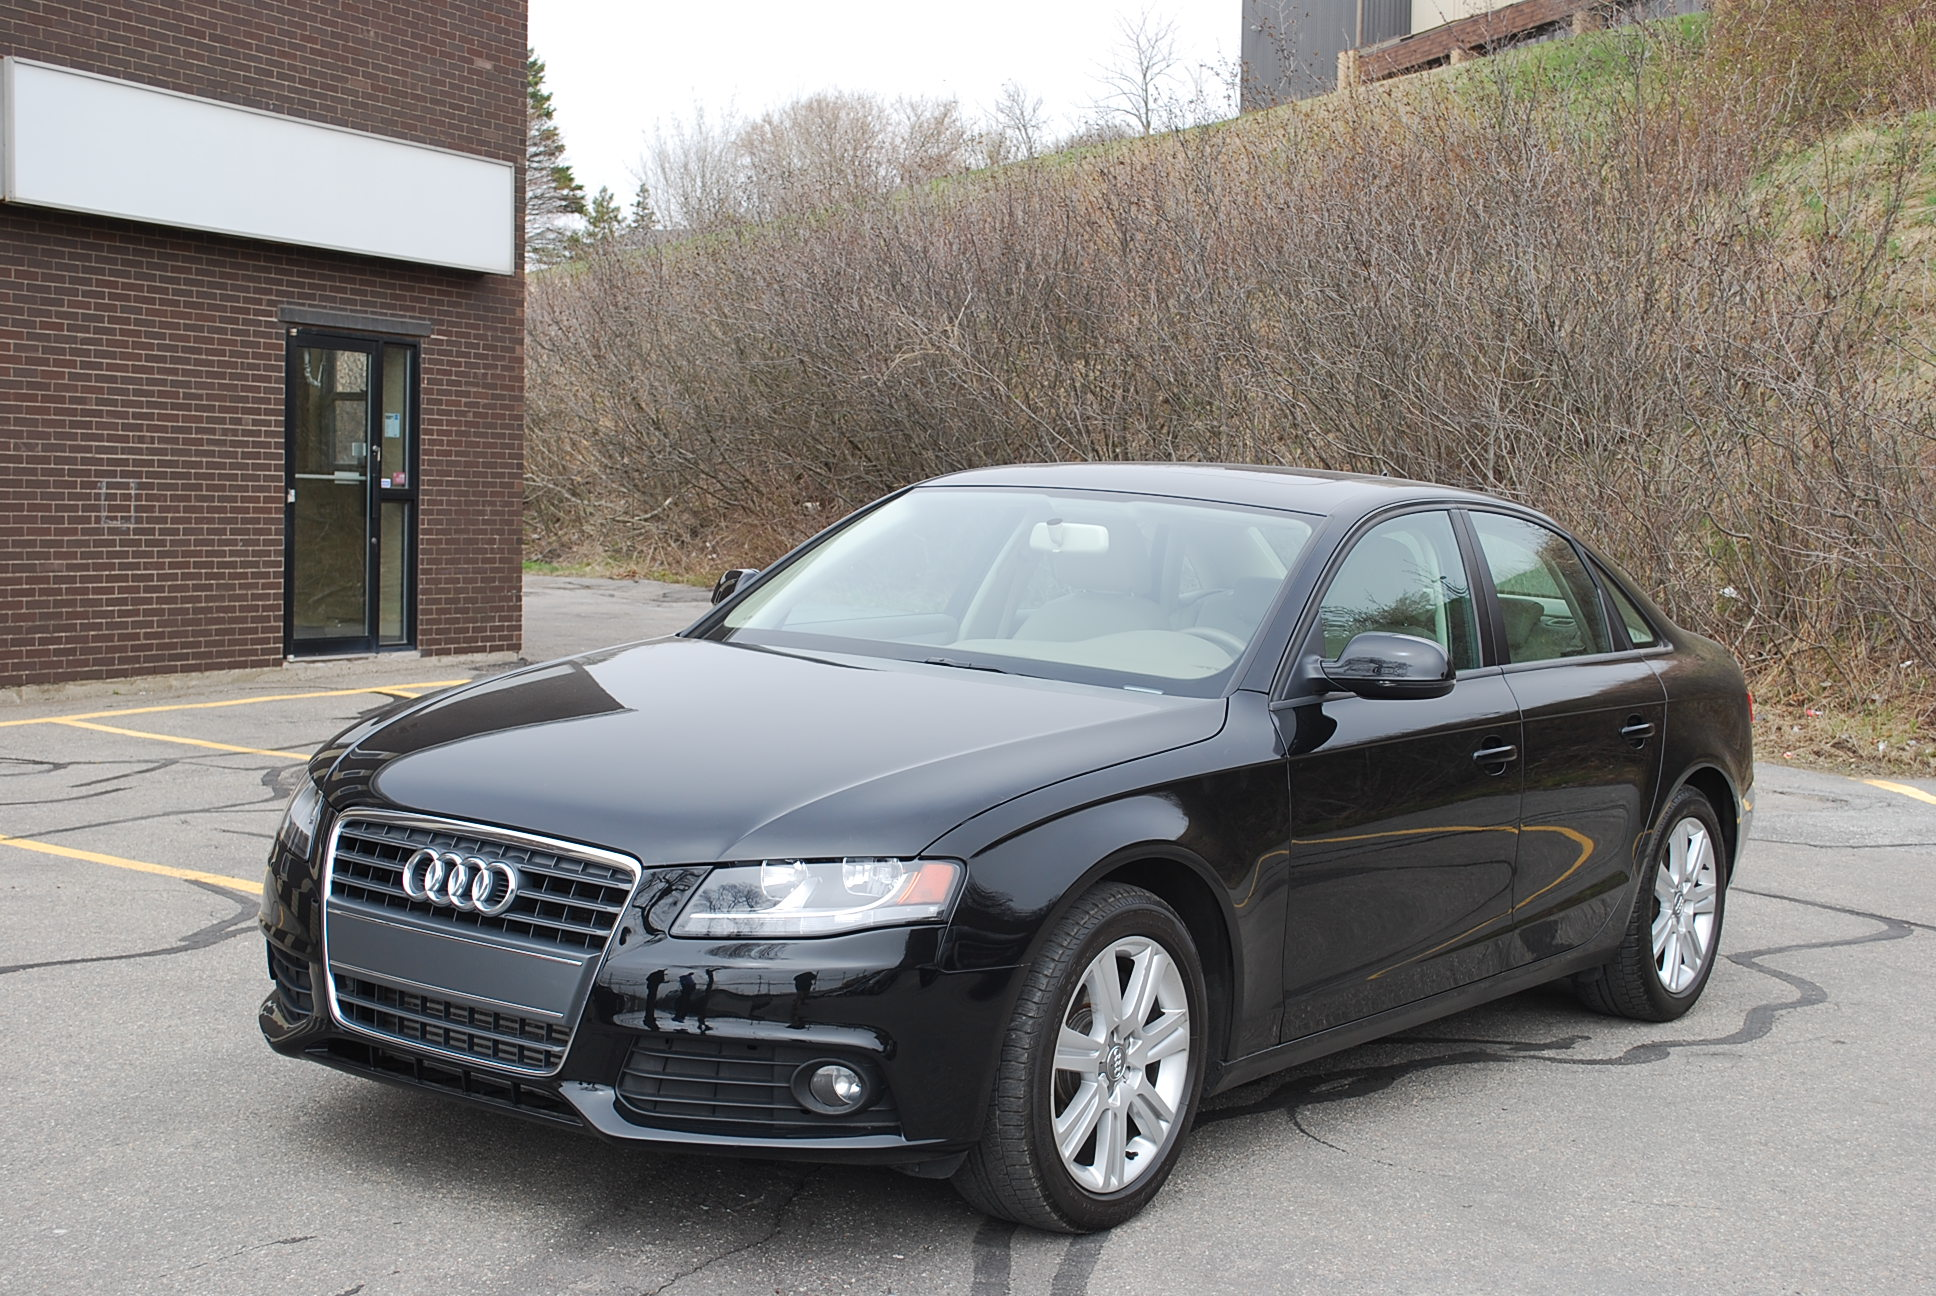 used 2010 audi a4 quattro 2 0t for sale in saint john nb. Black Bedroom Furniture Sets. Home Design Ideas